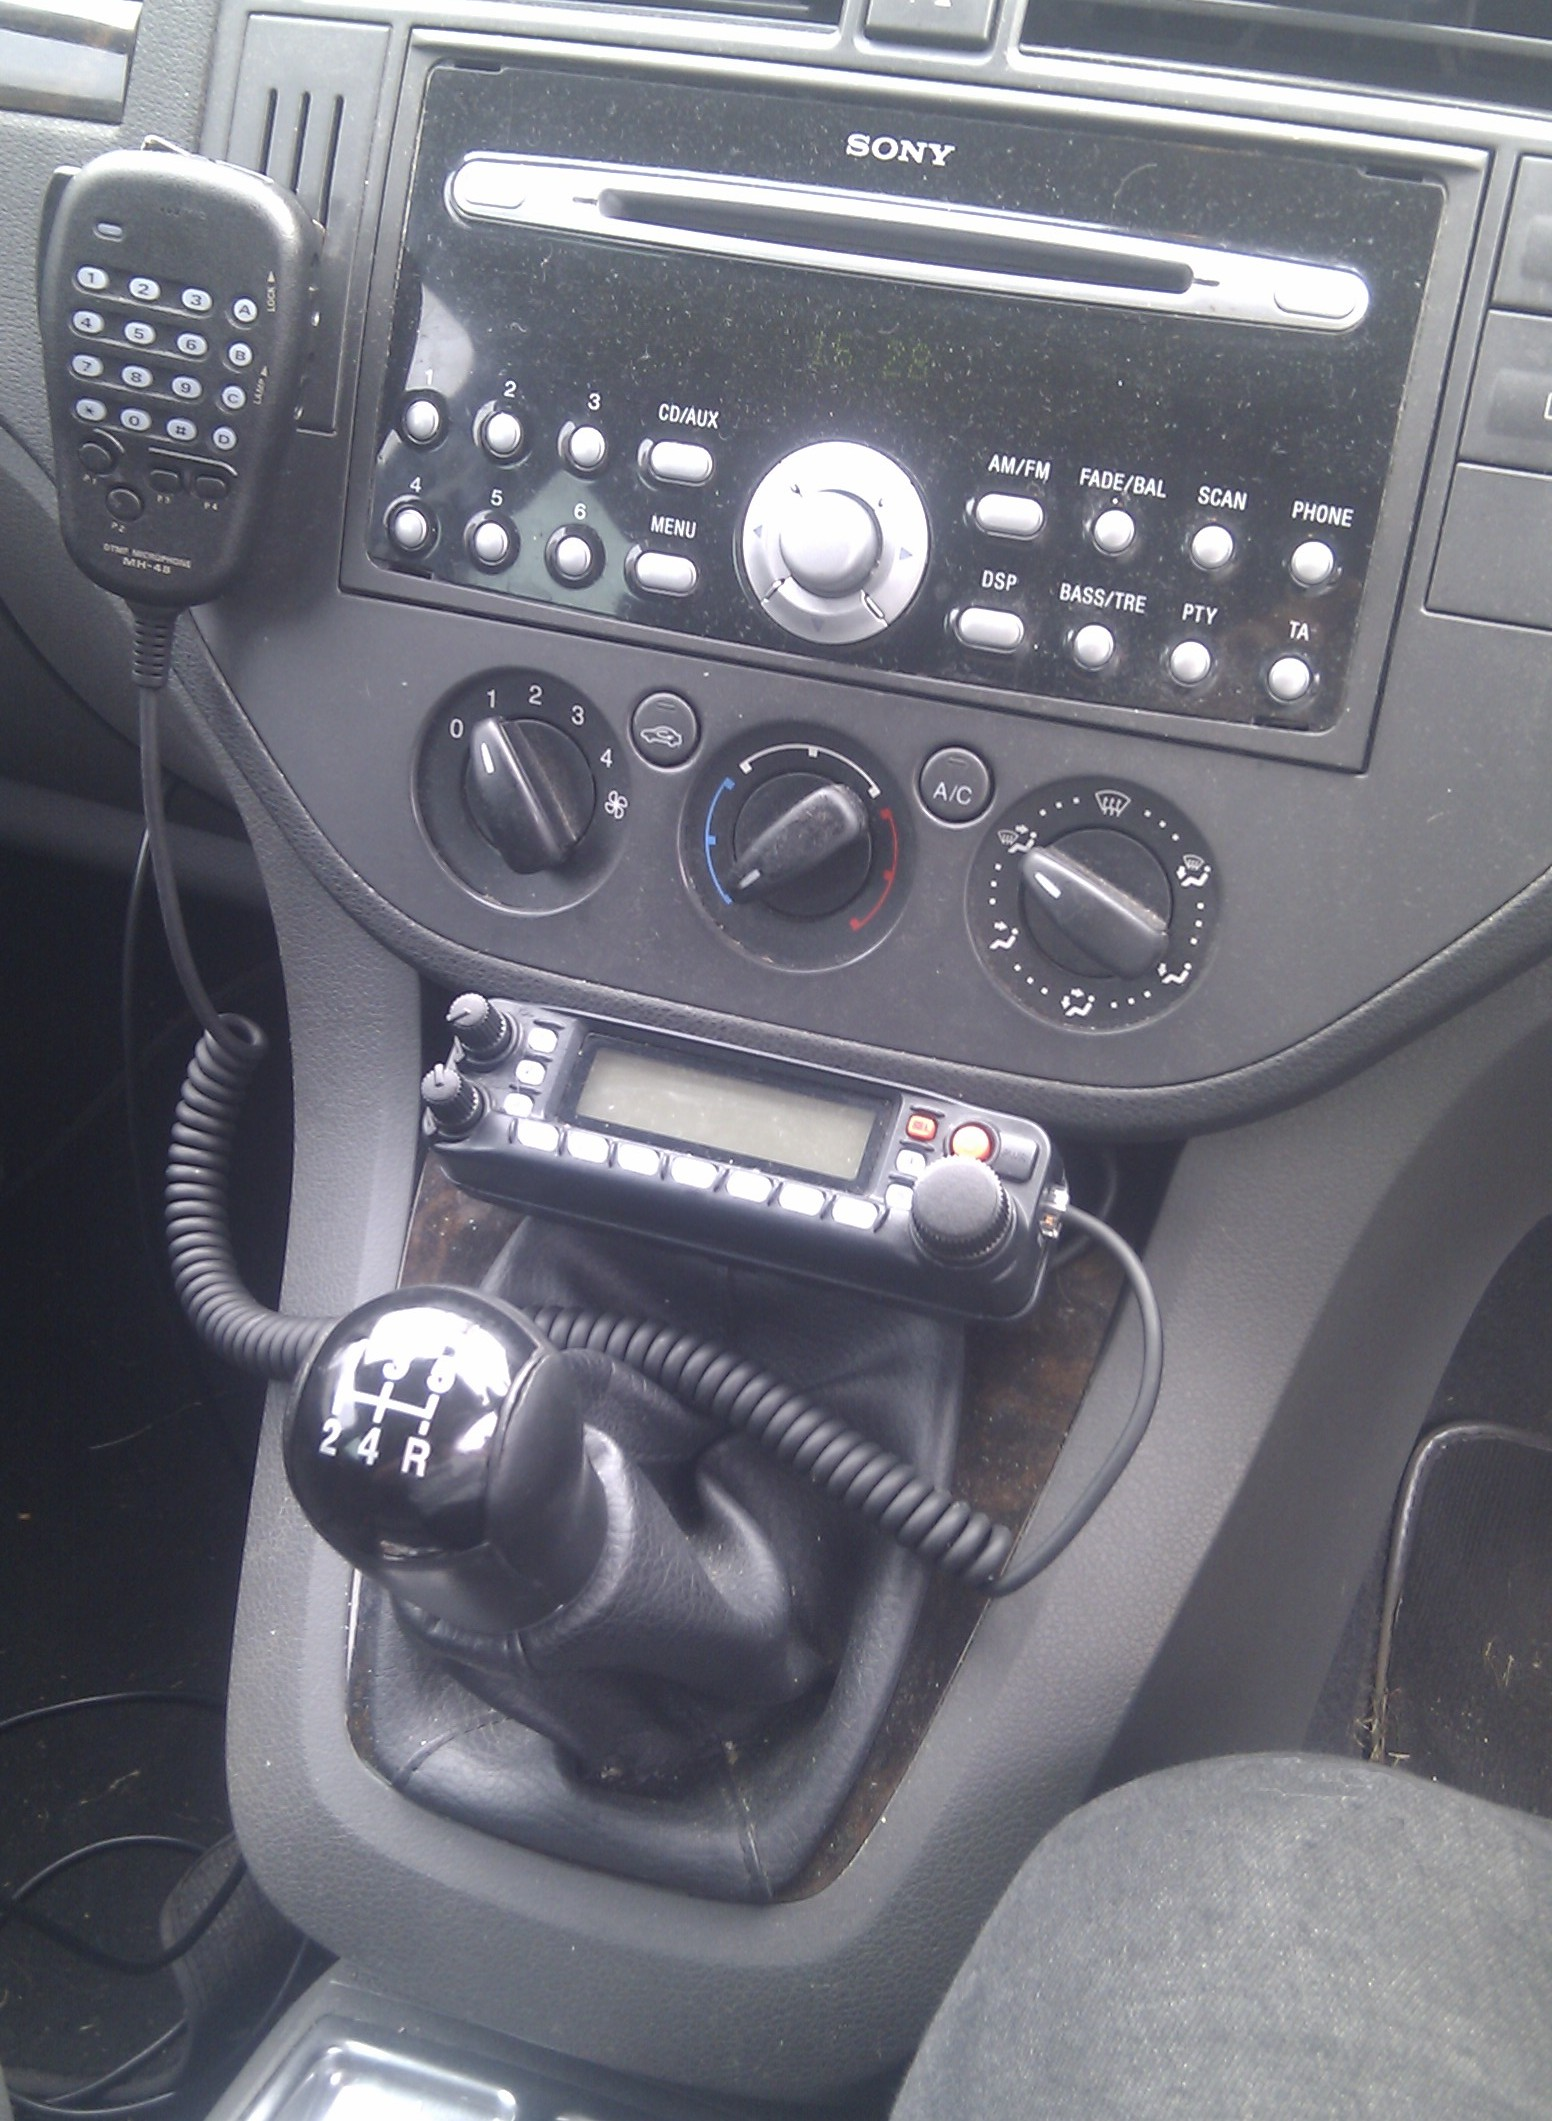 Radio Front in the car cabin